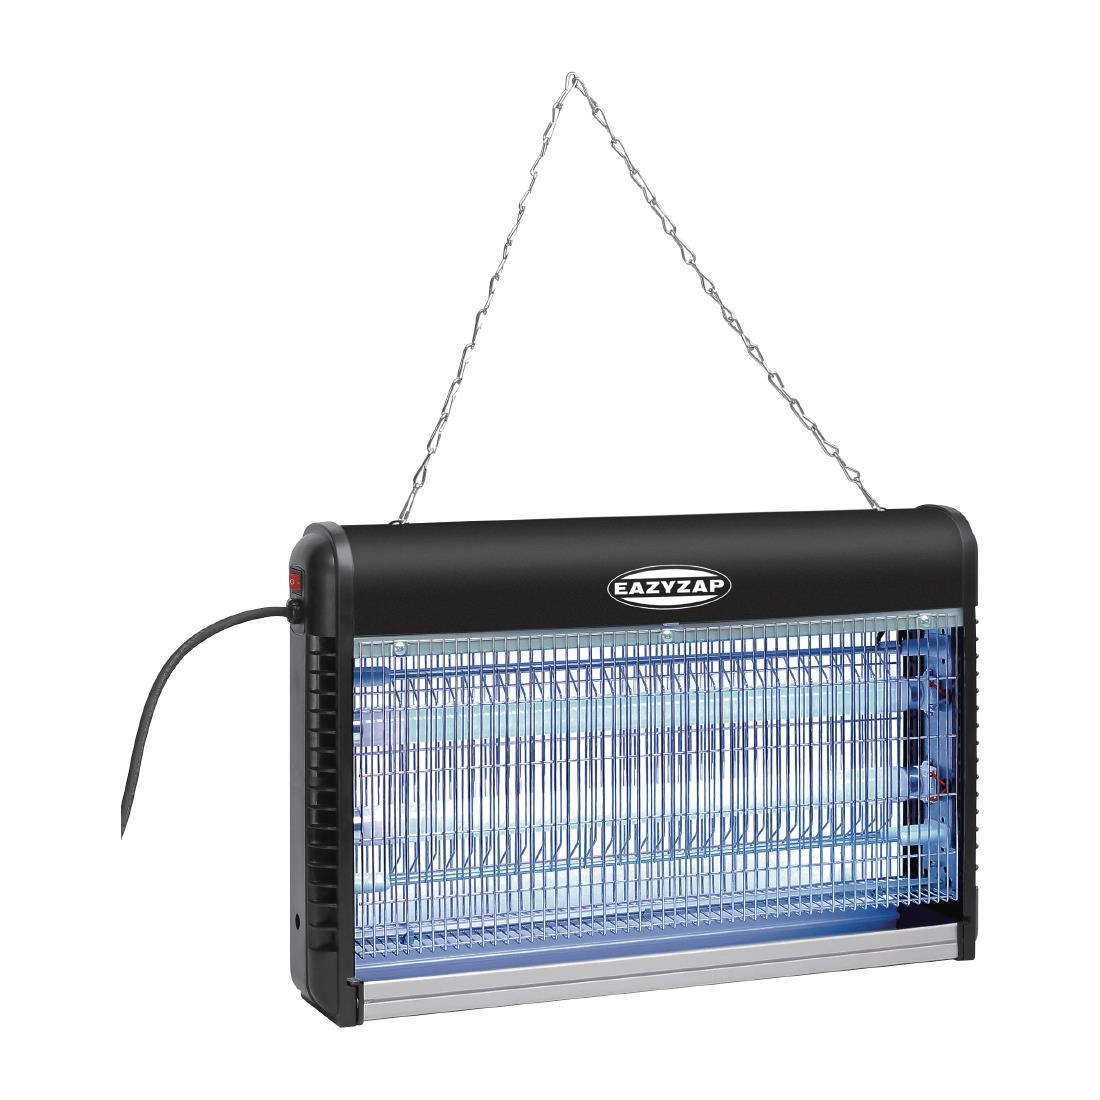 Image of Eazyzap LED Fly Killer 19W